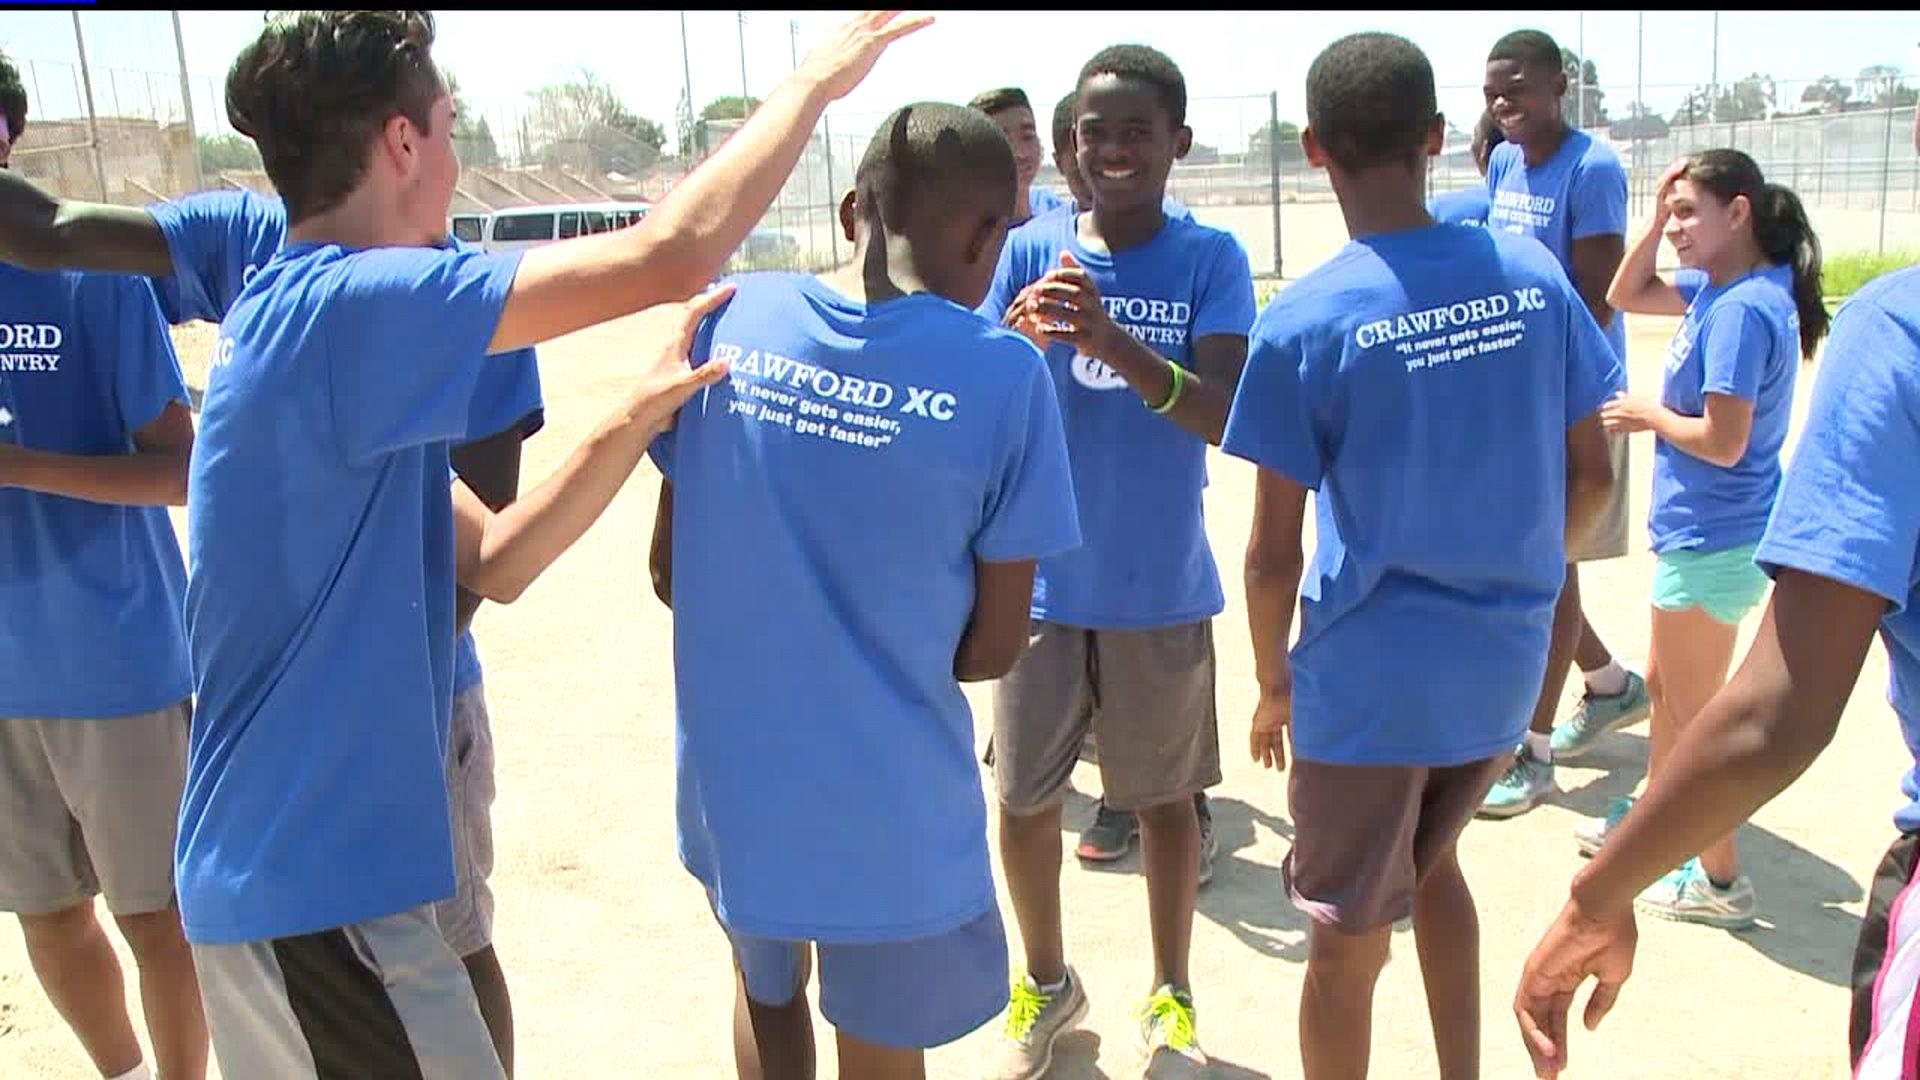 Teenage Refugees Find Support On High School Cross-Country Team